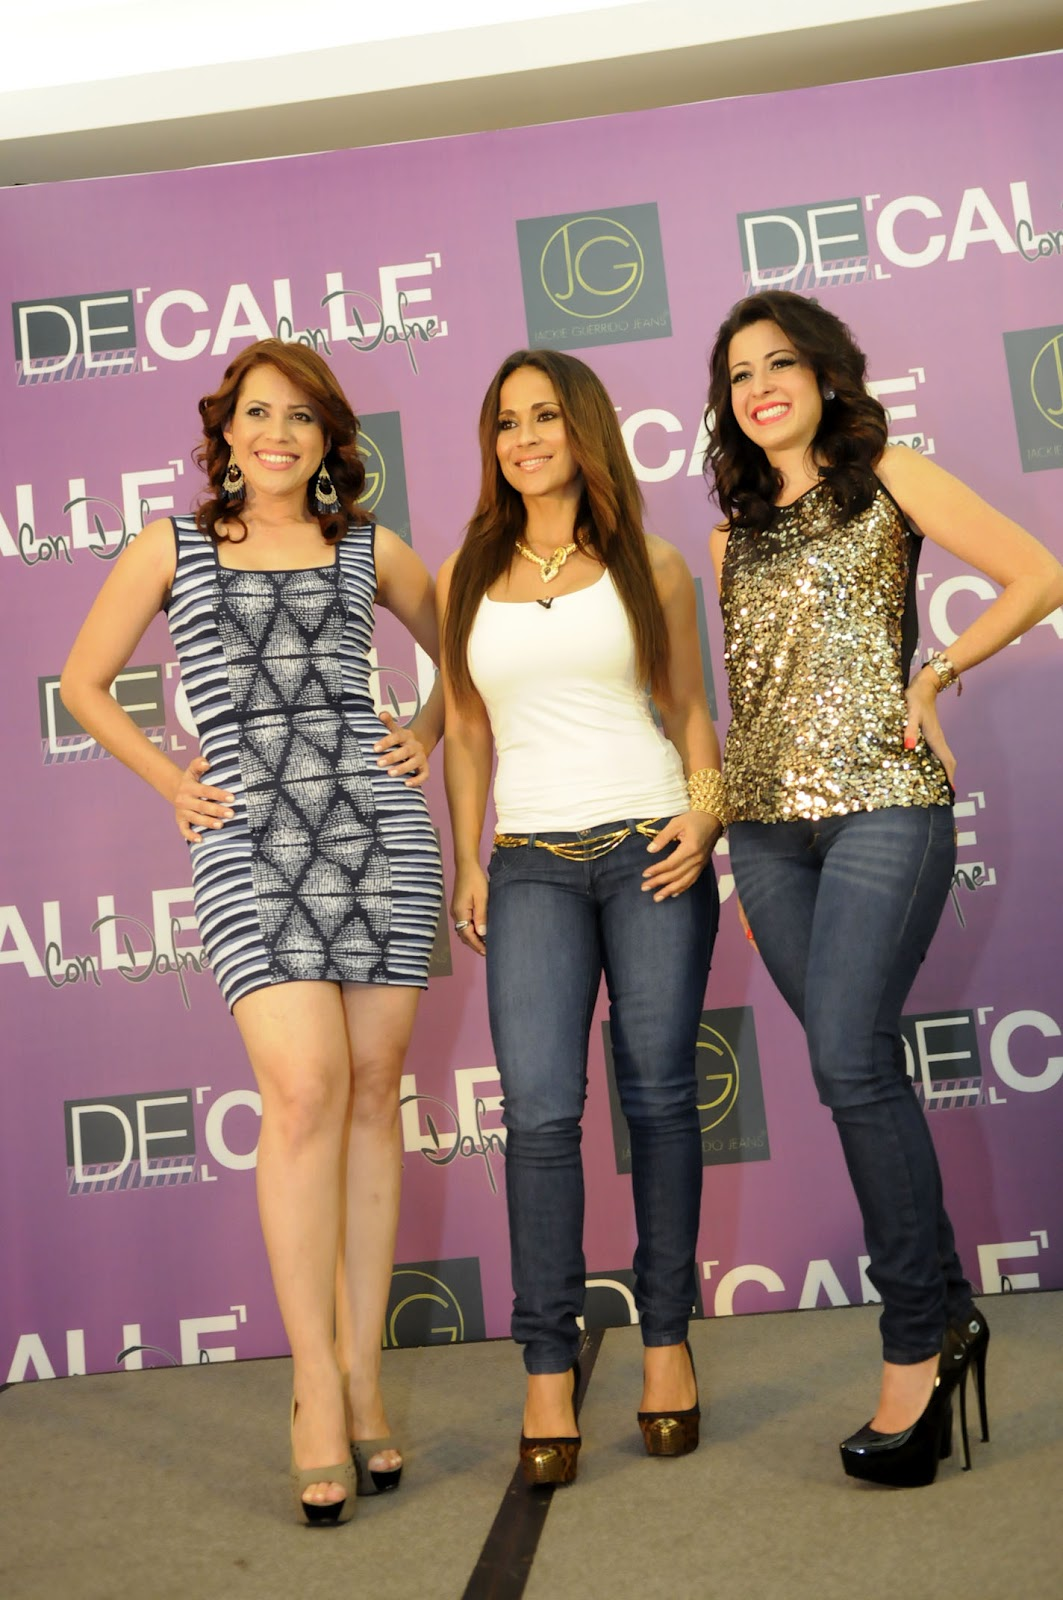 DeCalle Con Dafne celebra sus 16 aos en el aire con Jackie Guerrido como invitada especial